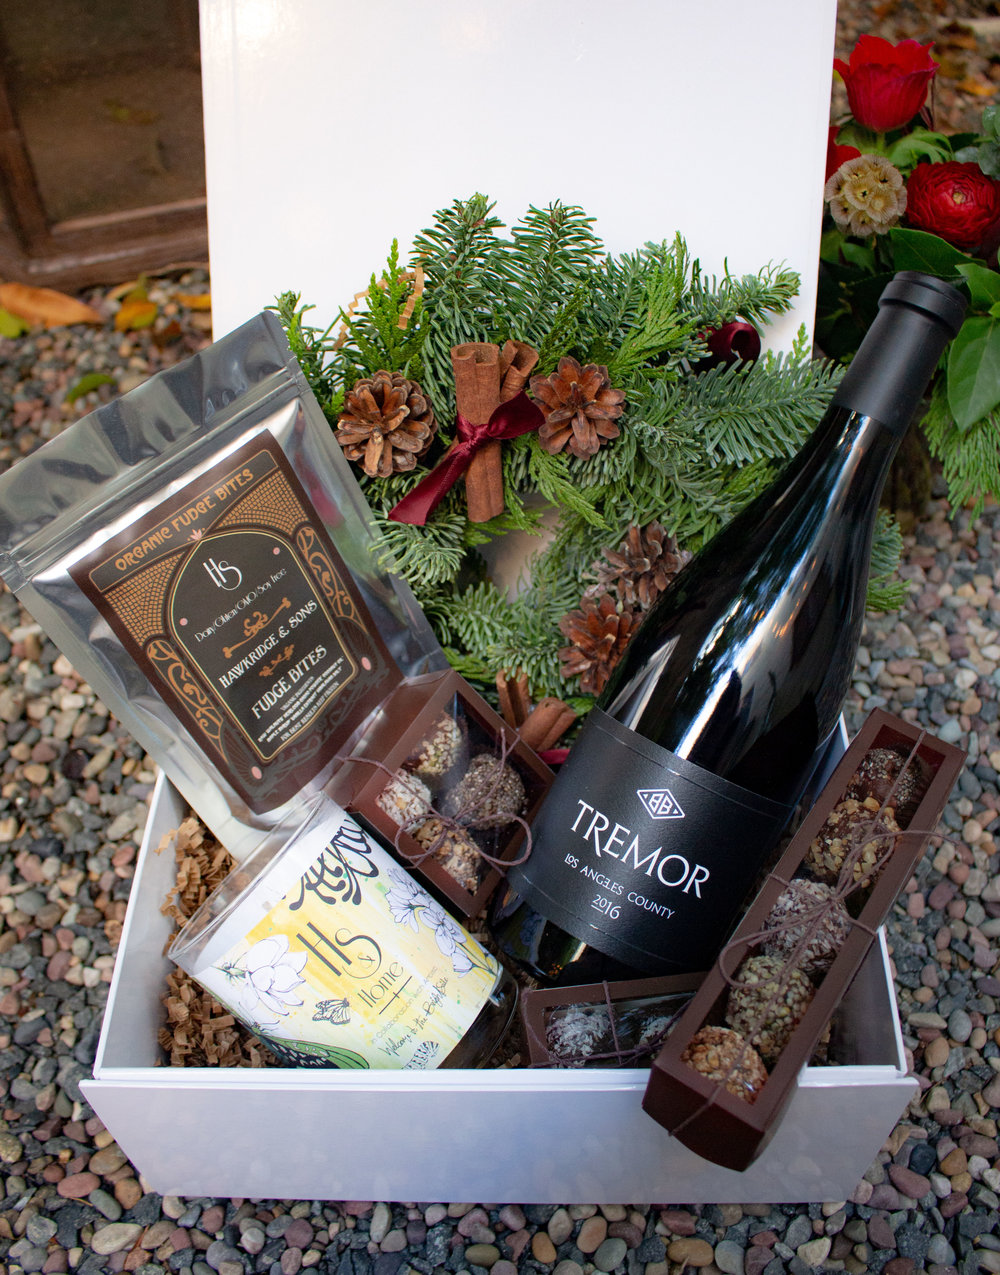 Jasmine /// Red Wine Combination $260   Gift box option, Christmas wreath, Candle, Blatty wine, Artisan Chocolates Box 5 piece, 4 piece & 2 piece and fudge bites. To purchase please contact info@hawkridgeandsons.com